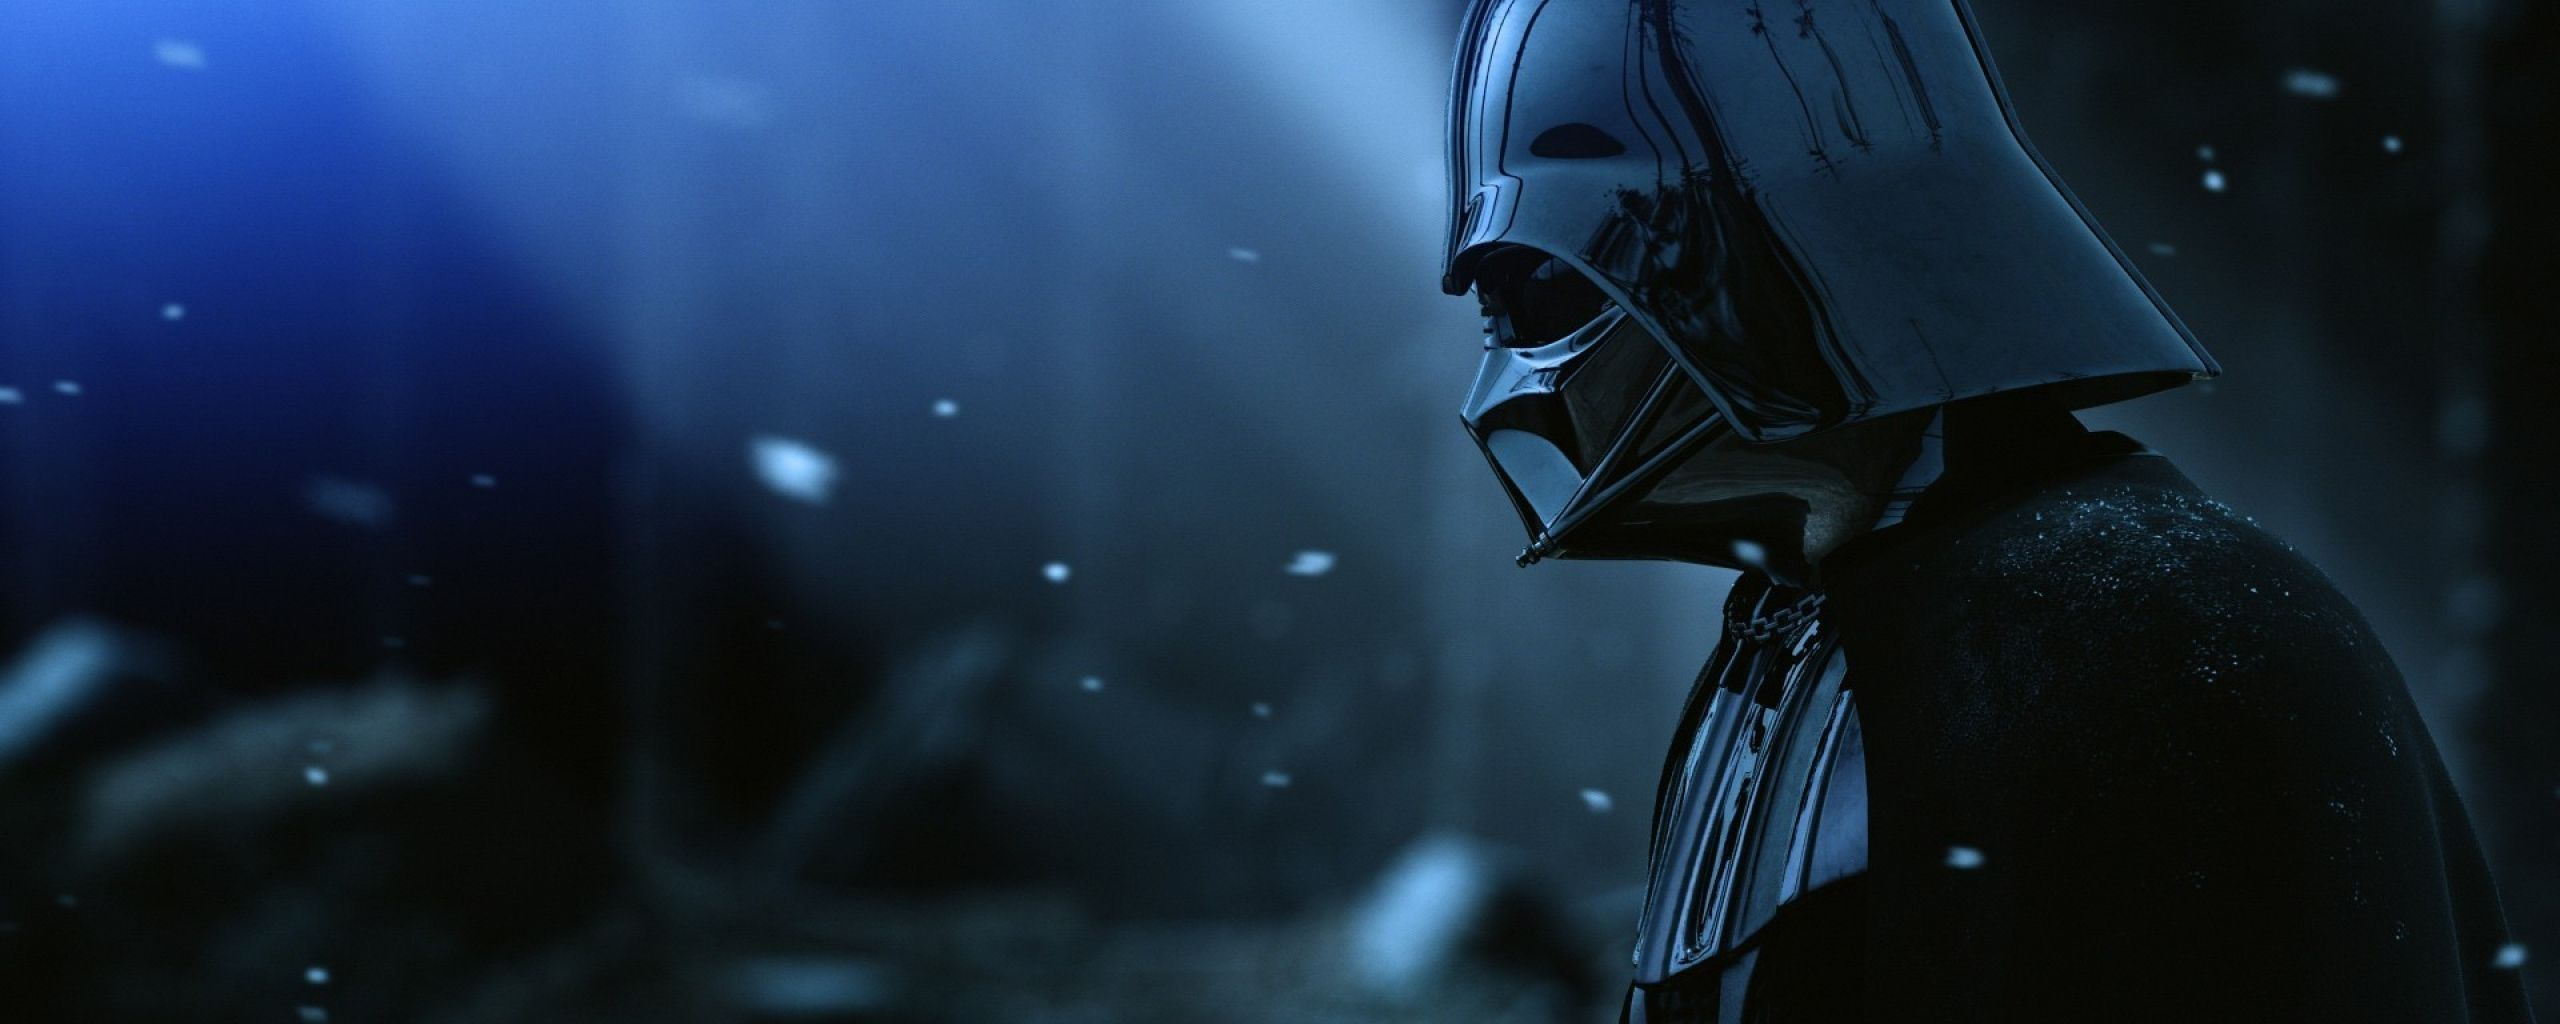 My Dual Monitor Wallpaper Collection Dump Star Wars Wallpaper Darth Vader Wallpaper Star Wars Illustration